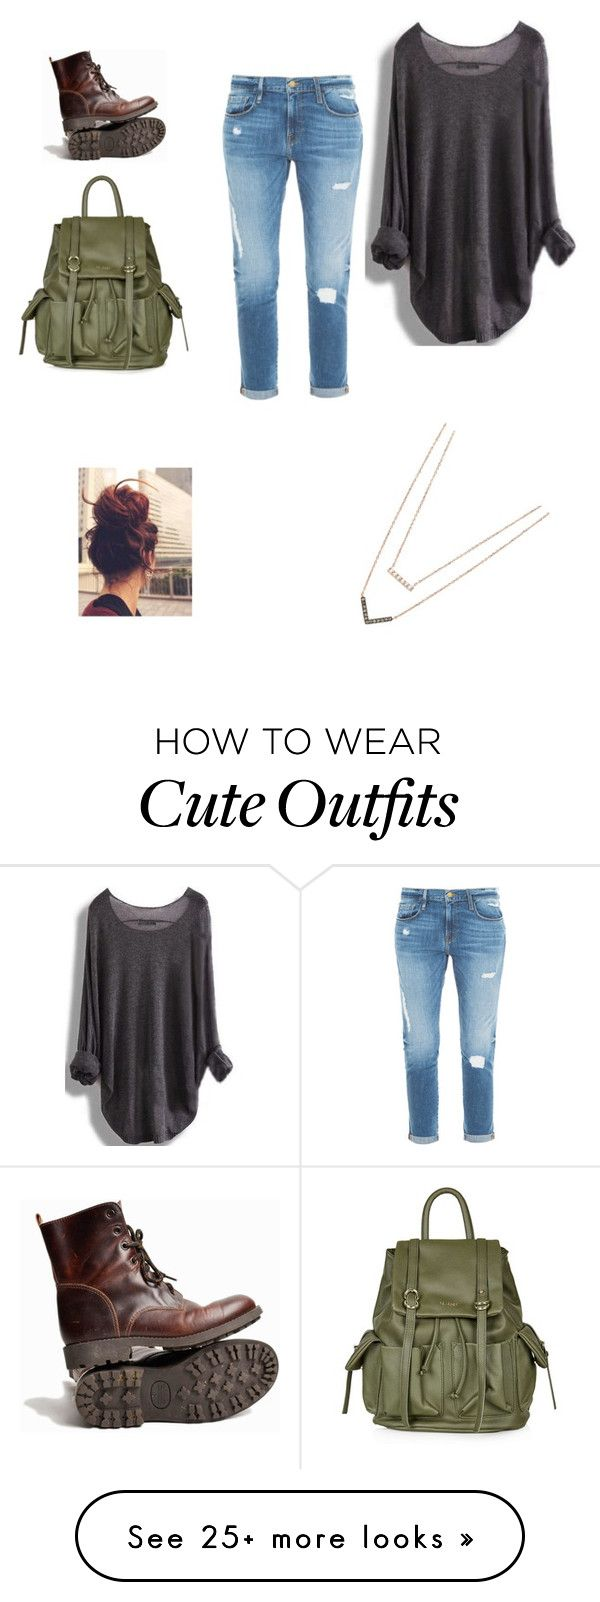 """""""Cute day outfit"""" by izabela19992011 on Polyvore featuring Topshop, Frame Denim and Michael Kors"""